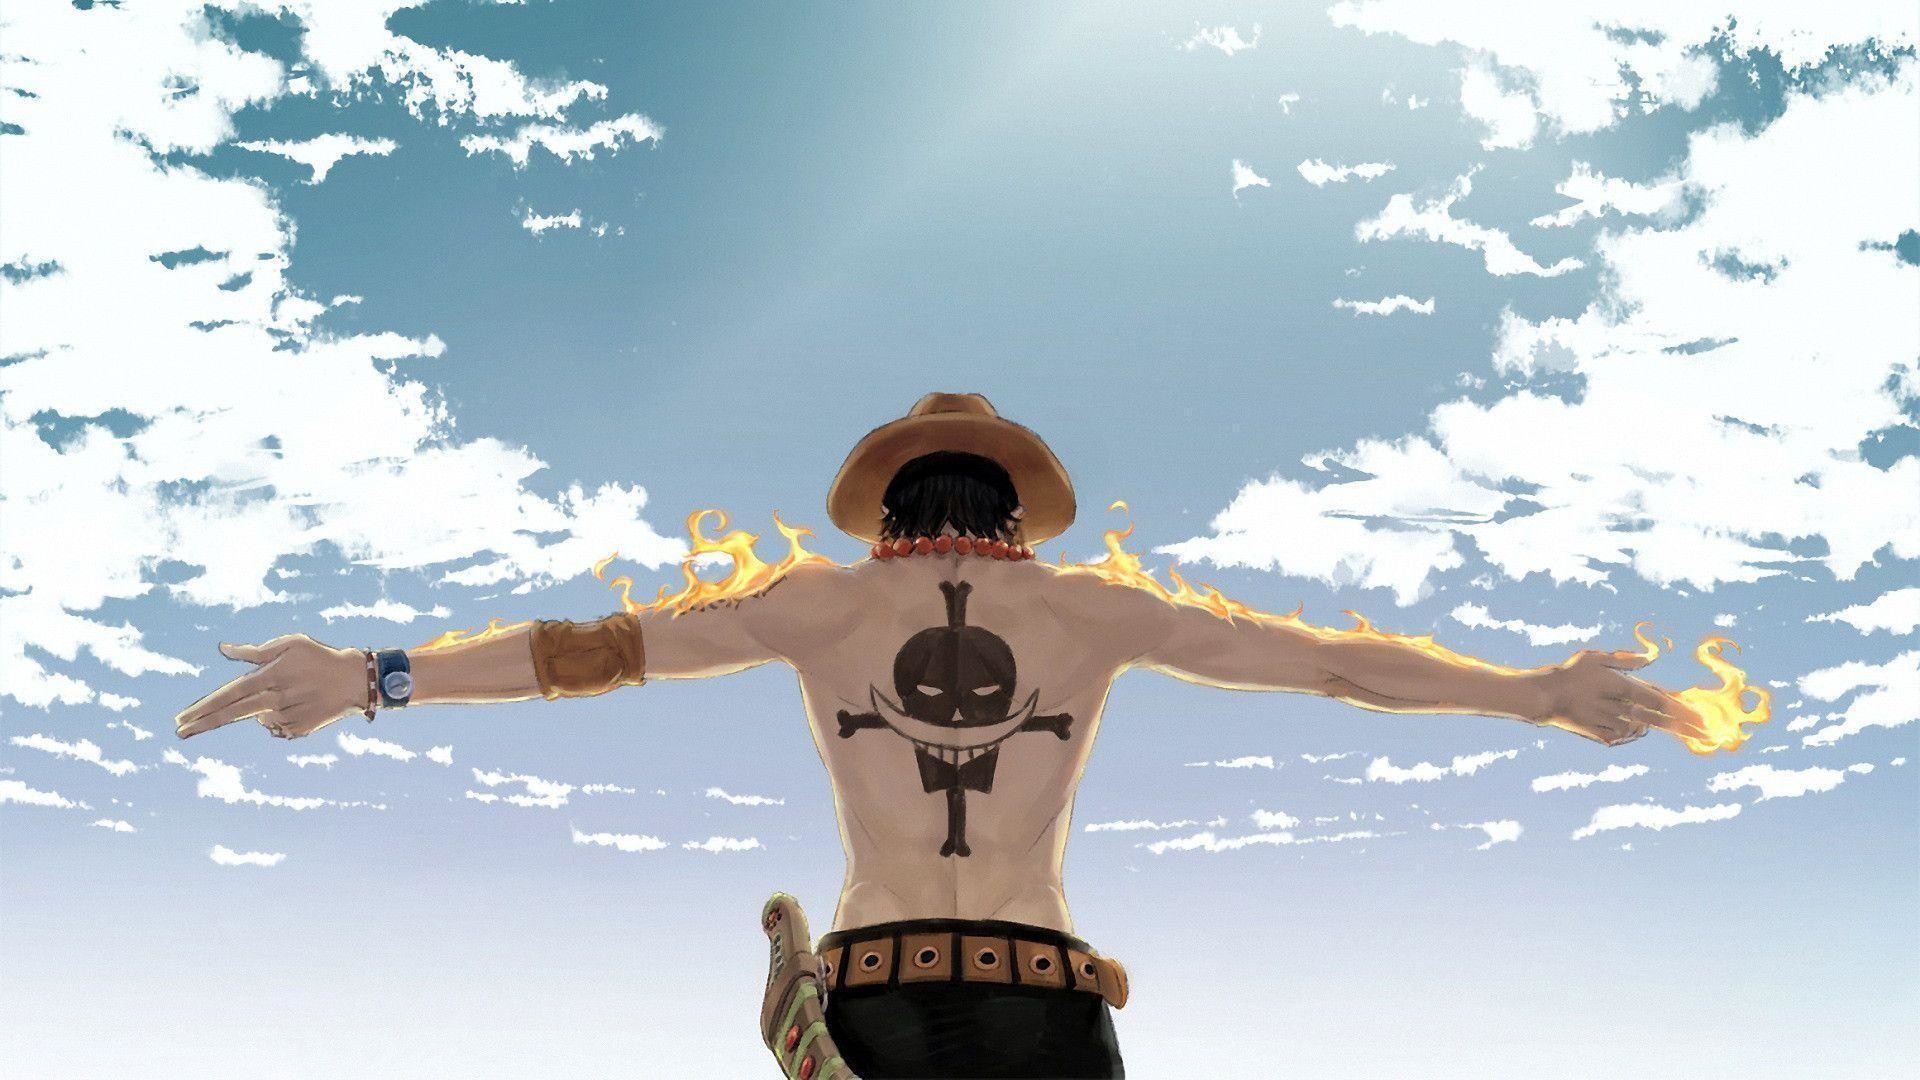 1920x1080 One Piece Luffy Wallpaper Widescreen Anime and Cartoon Wallpapers .